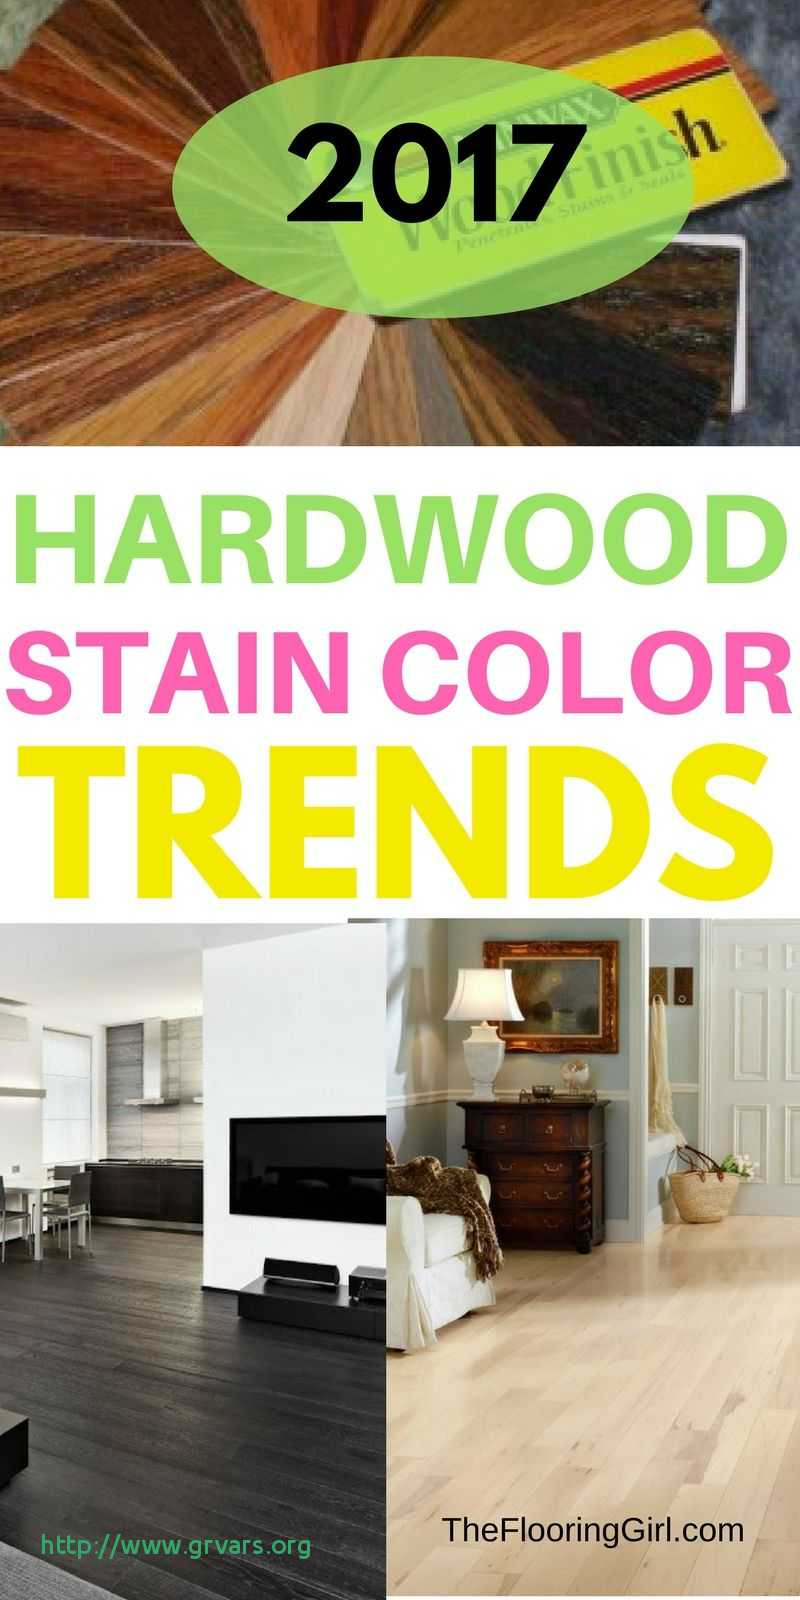 Sanding Hardwood Floors Grit Of 21 Impressionnant Floor Sander Hire Rates Ideas Blog for Floor Sander Hire Rates Frais Hardwood Flooring Stain Color Trends 2018